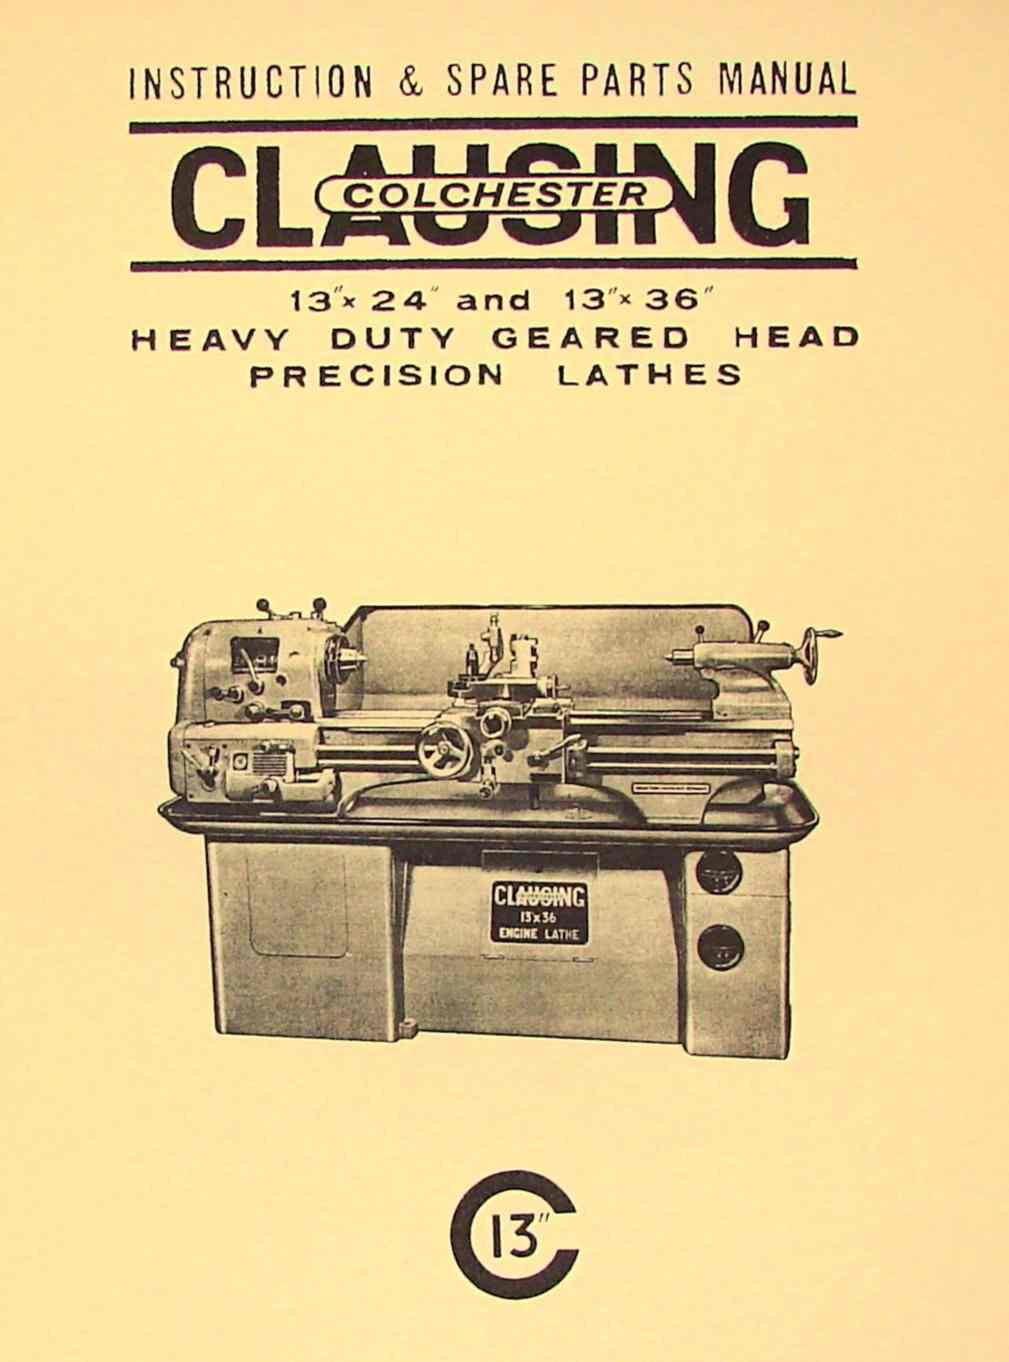 doall 13 lathe wiring schematic wiring diagram portal u2022 rh graphiko co Lathe Machine Parts Schematic Learning Labeled Diagram of a Lathe